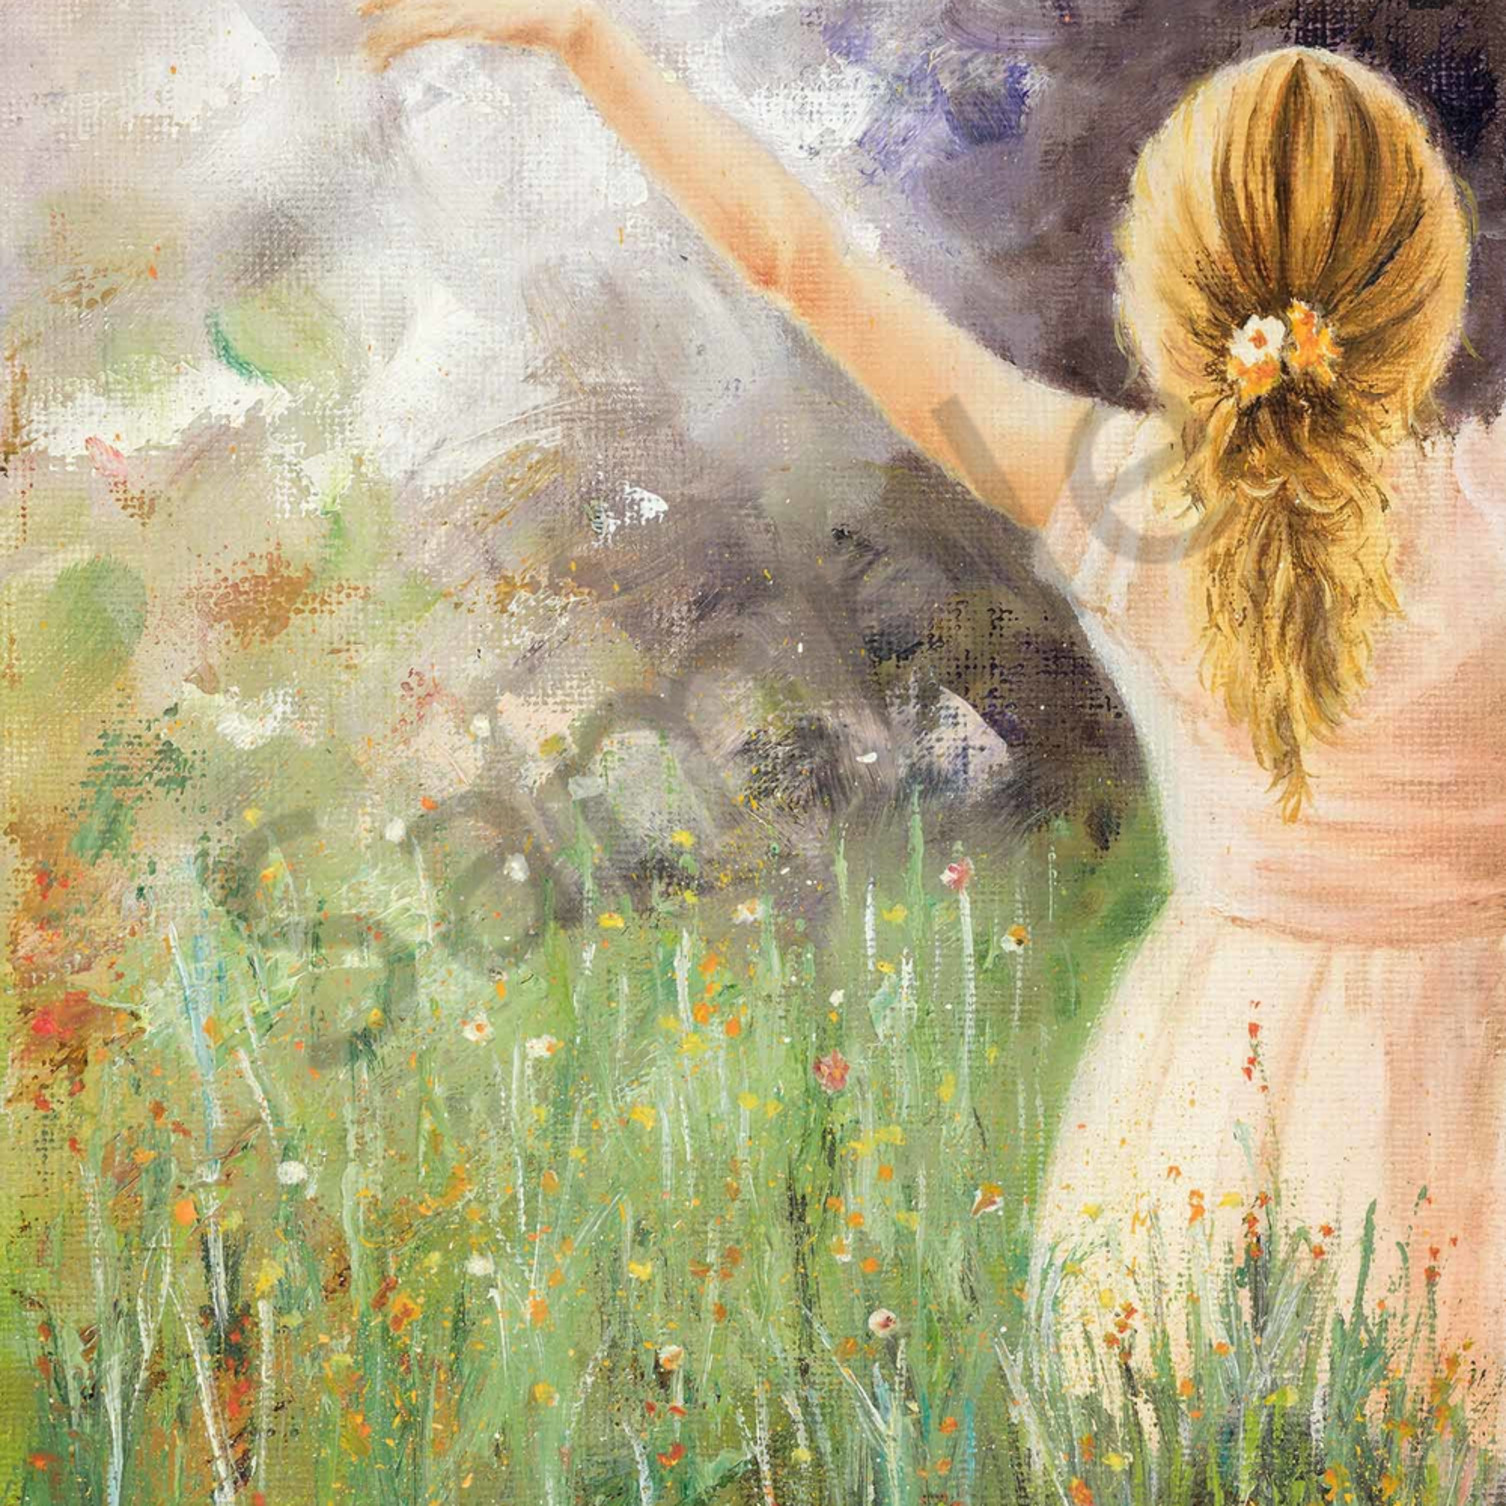 Colin maxfield 004 girl in meadow 2000px ytmmqe